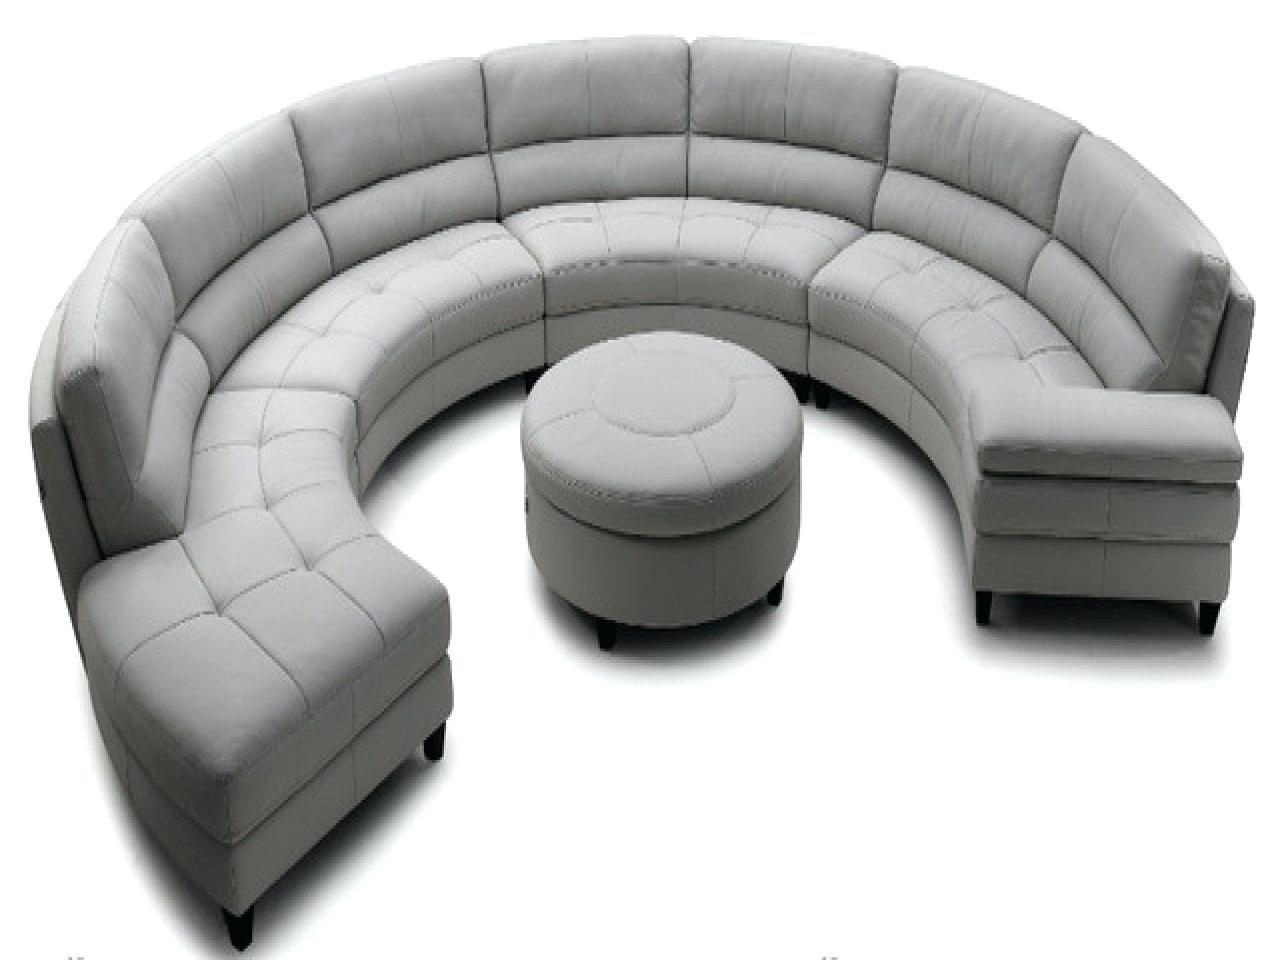 Newest Circular Sectional Sofa Ed Modern Round Sofas Outdoor Curved Pertaining To Round Sofas (View 7 of 20)